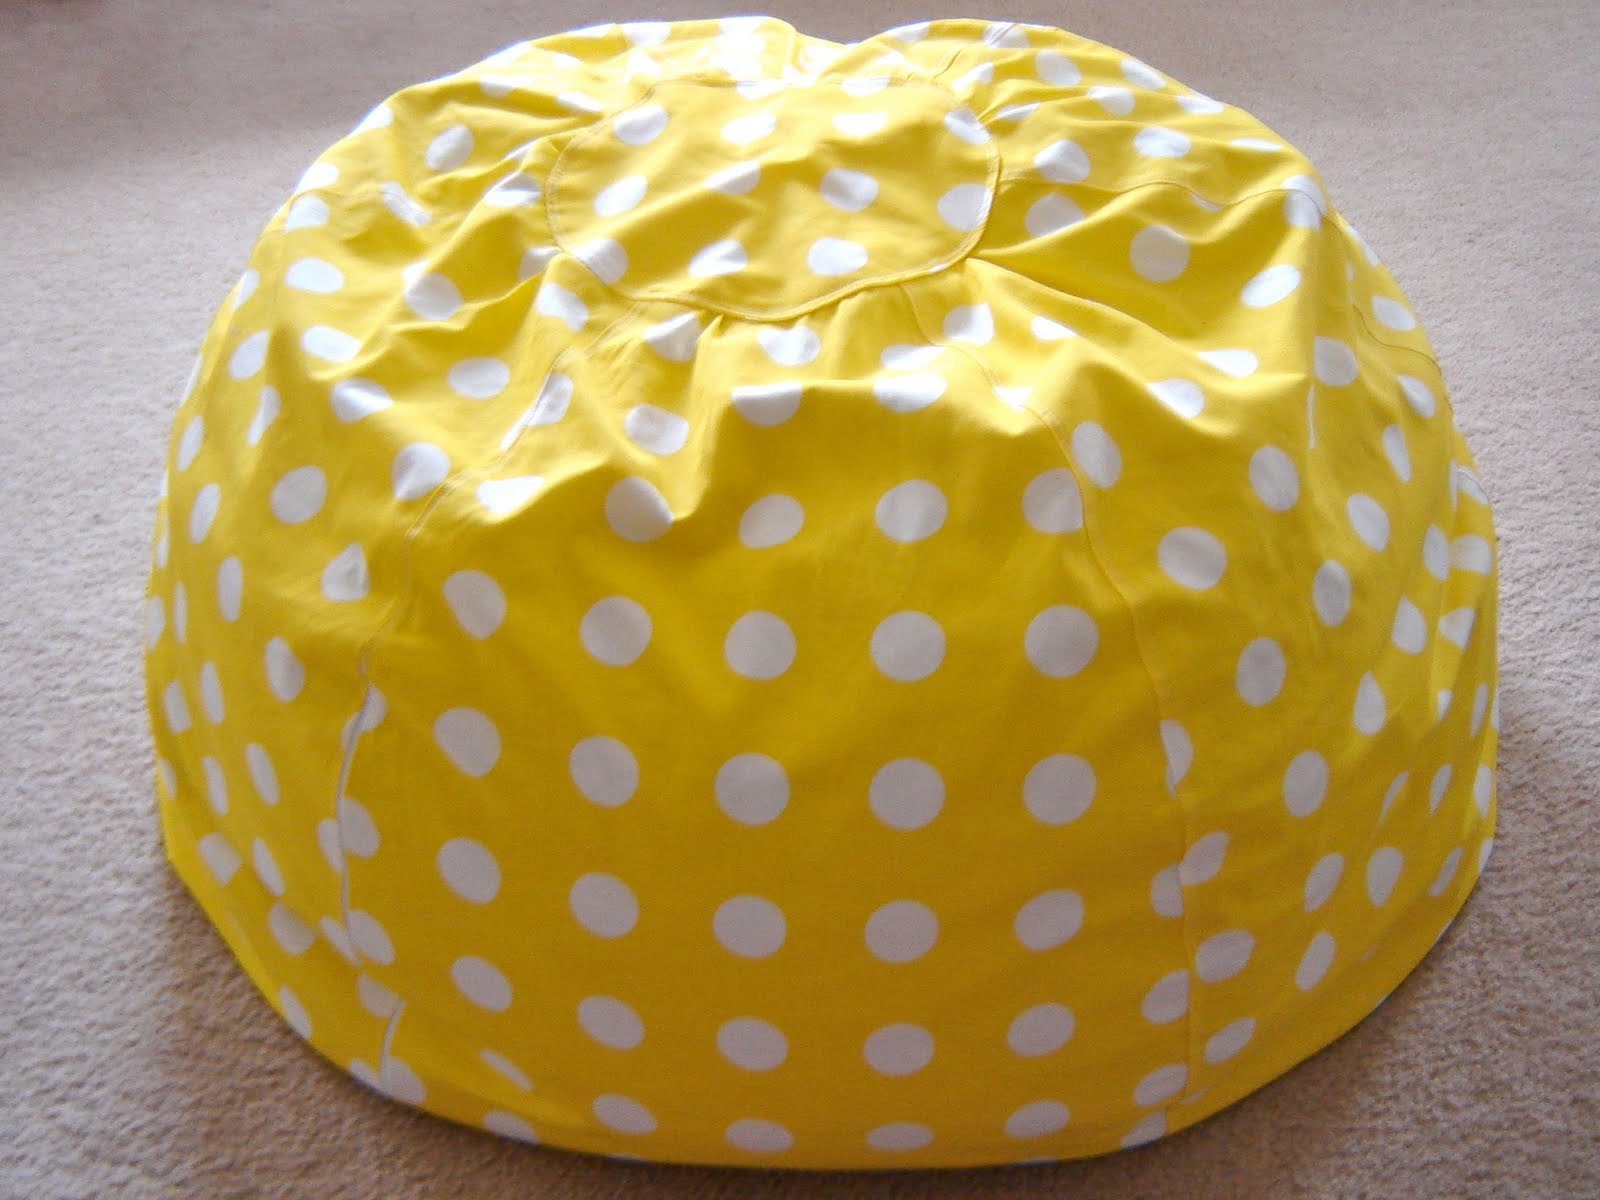 Bean Bag Chair Pattern Template http://themudpuddleproject.blogspot.com/2010/06/bean-bag-chair.html